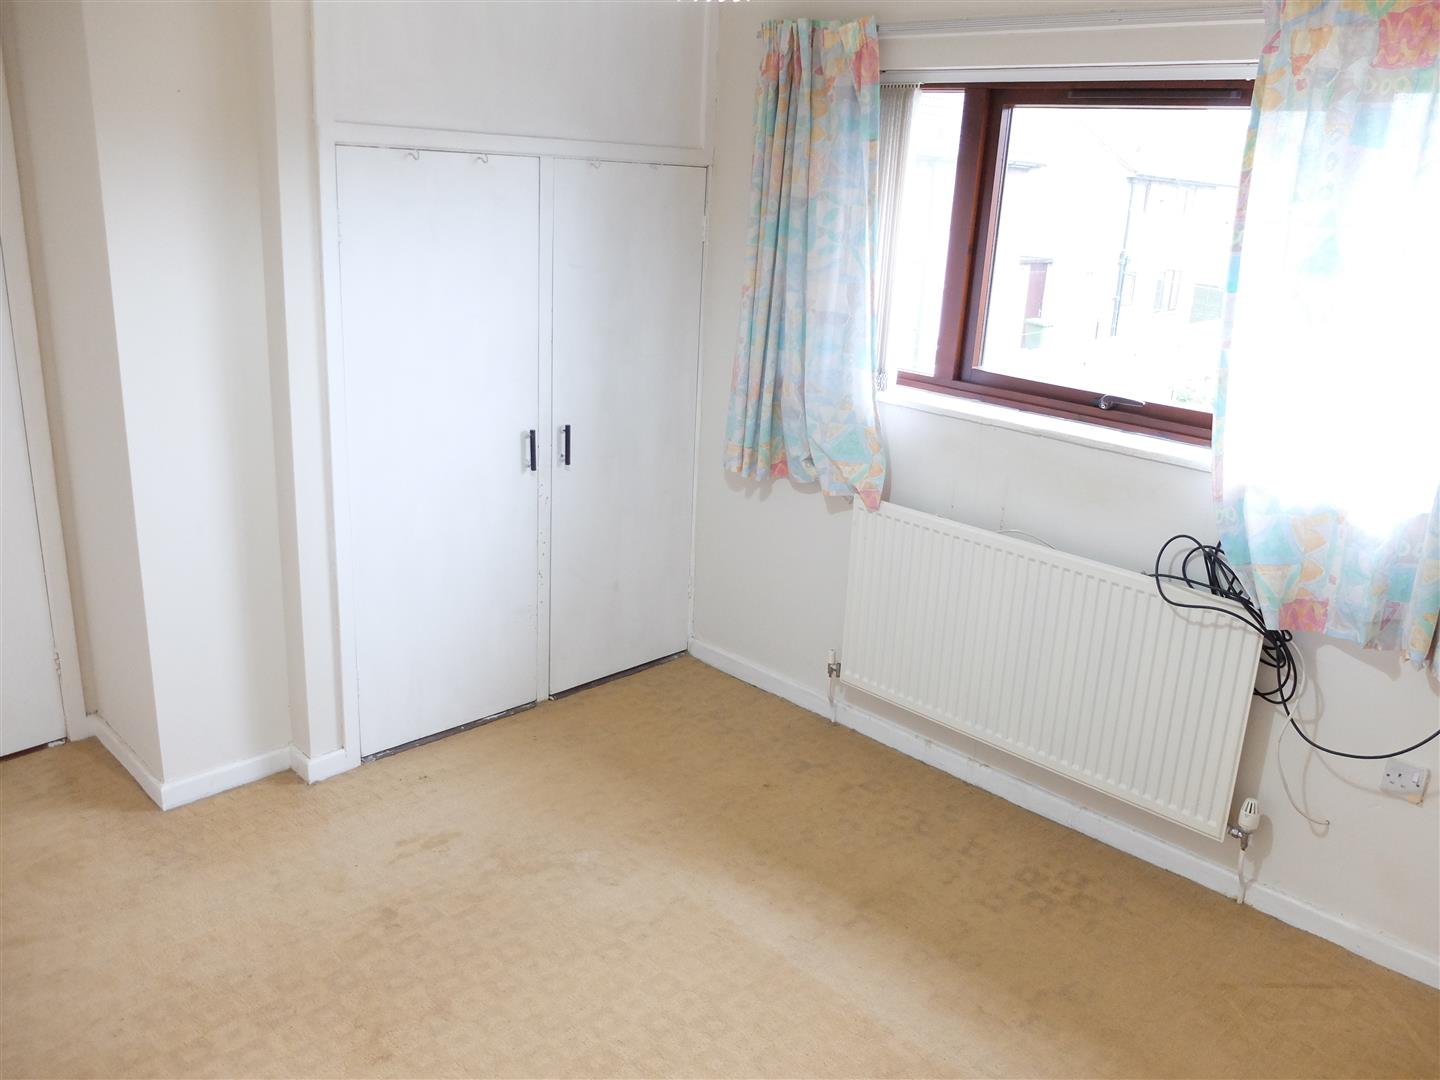 2 Bedrooms House - Mid Terrace For Sale 20 Rosehill Drive Carlisle 70,000